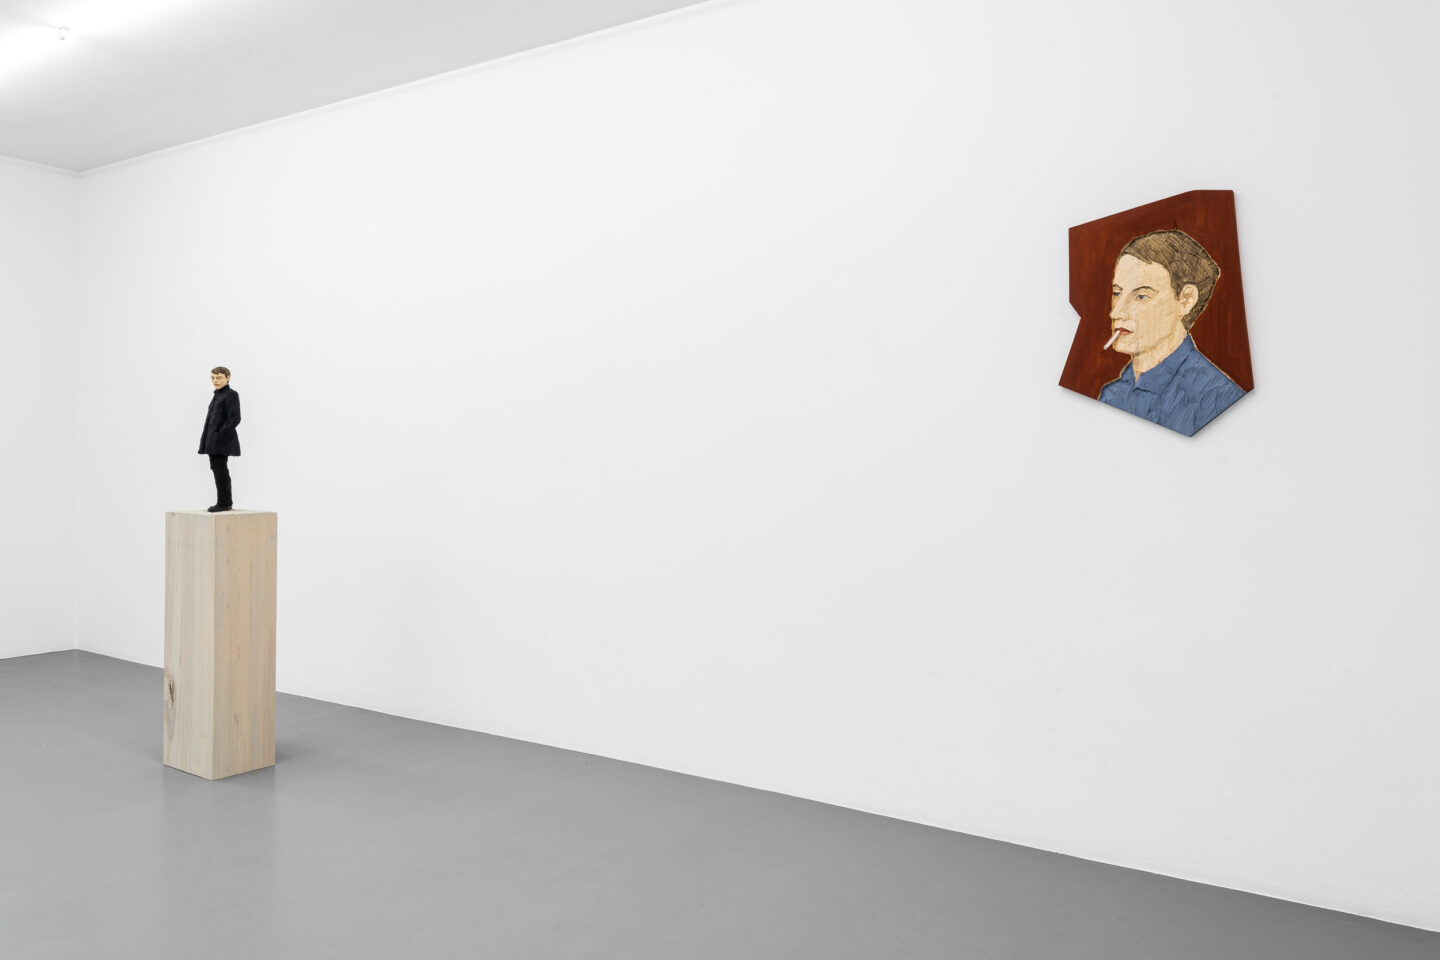 Exhibition View Stephan Balkenhol Soloshow at Mai 36, Zurich, 2019 / Courtesy: the artist and Mai 36-8